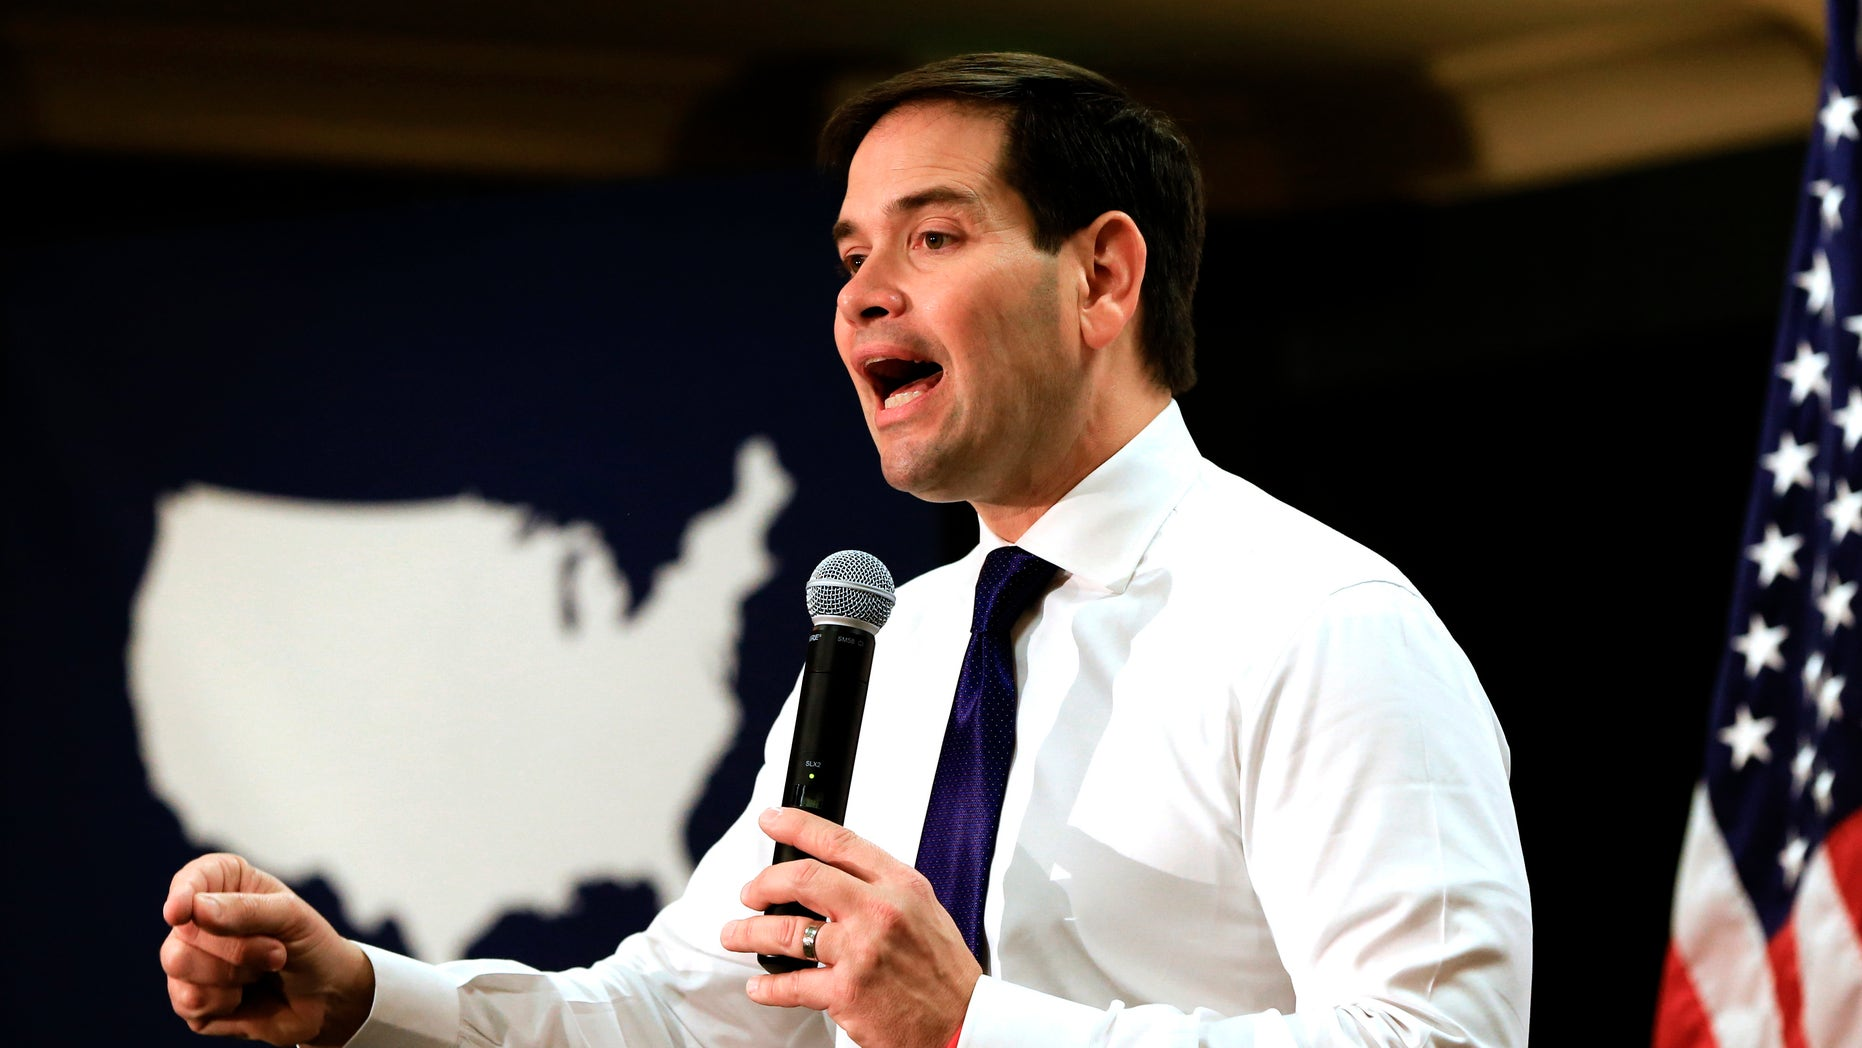 Republican presidential candidate, Sen. Marco Rubio, R-Fla. speaks at a campaign stop in Council Bluffs, Iowa, Saturday, Jan. 16, 2016. (AP Photo/Nati Harnik)